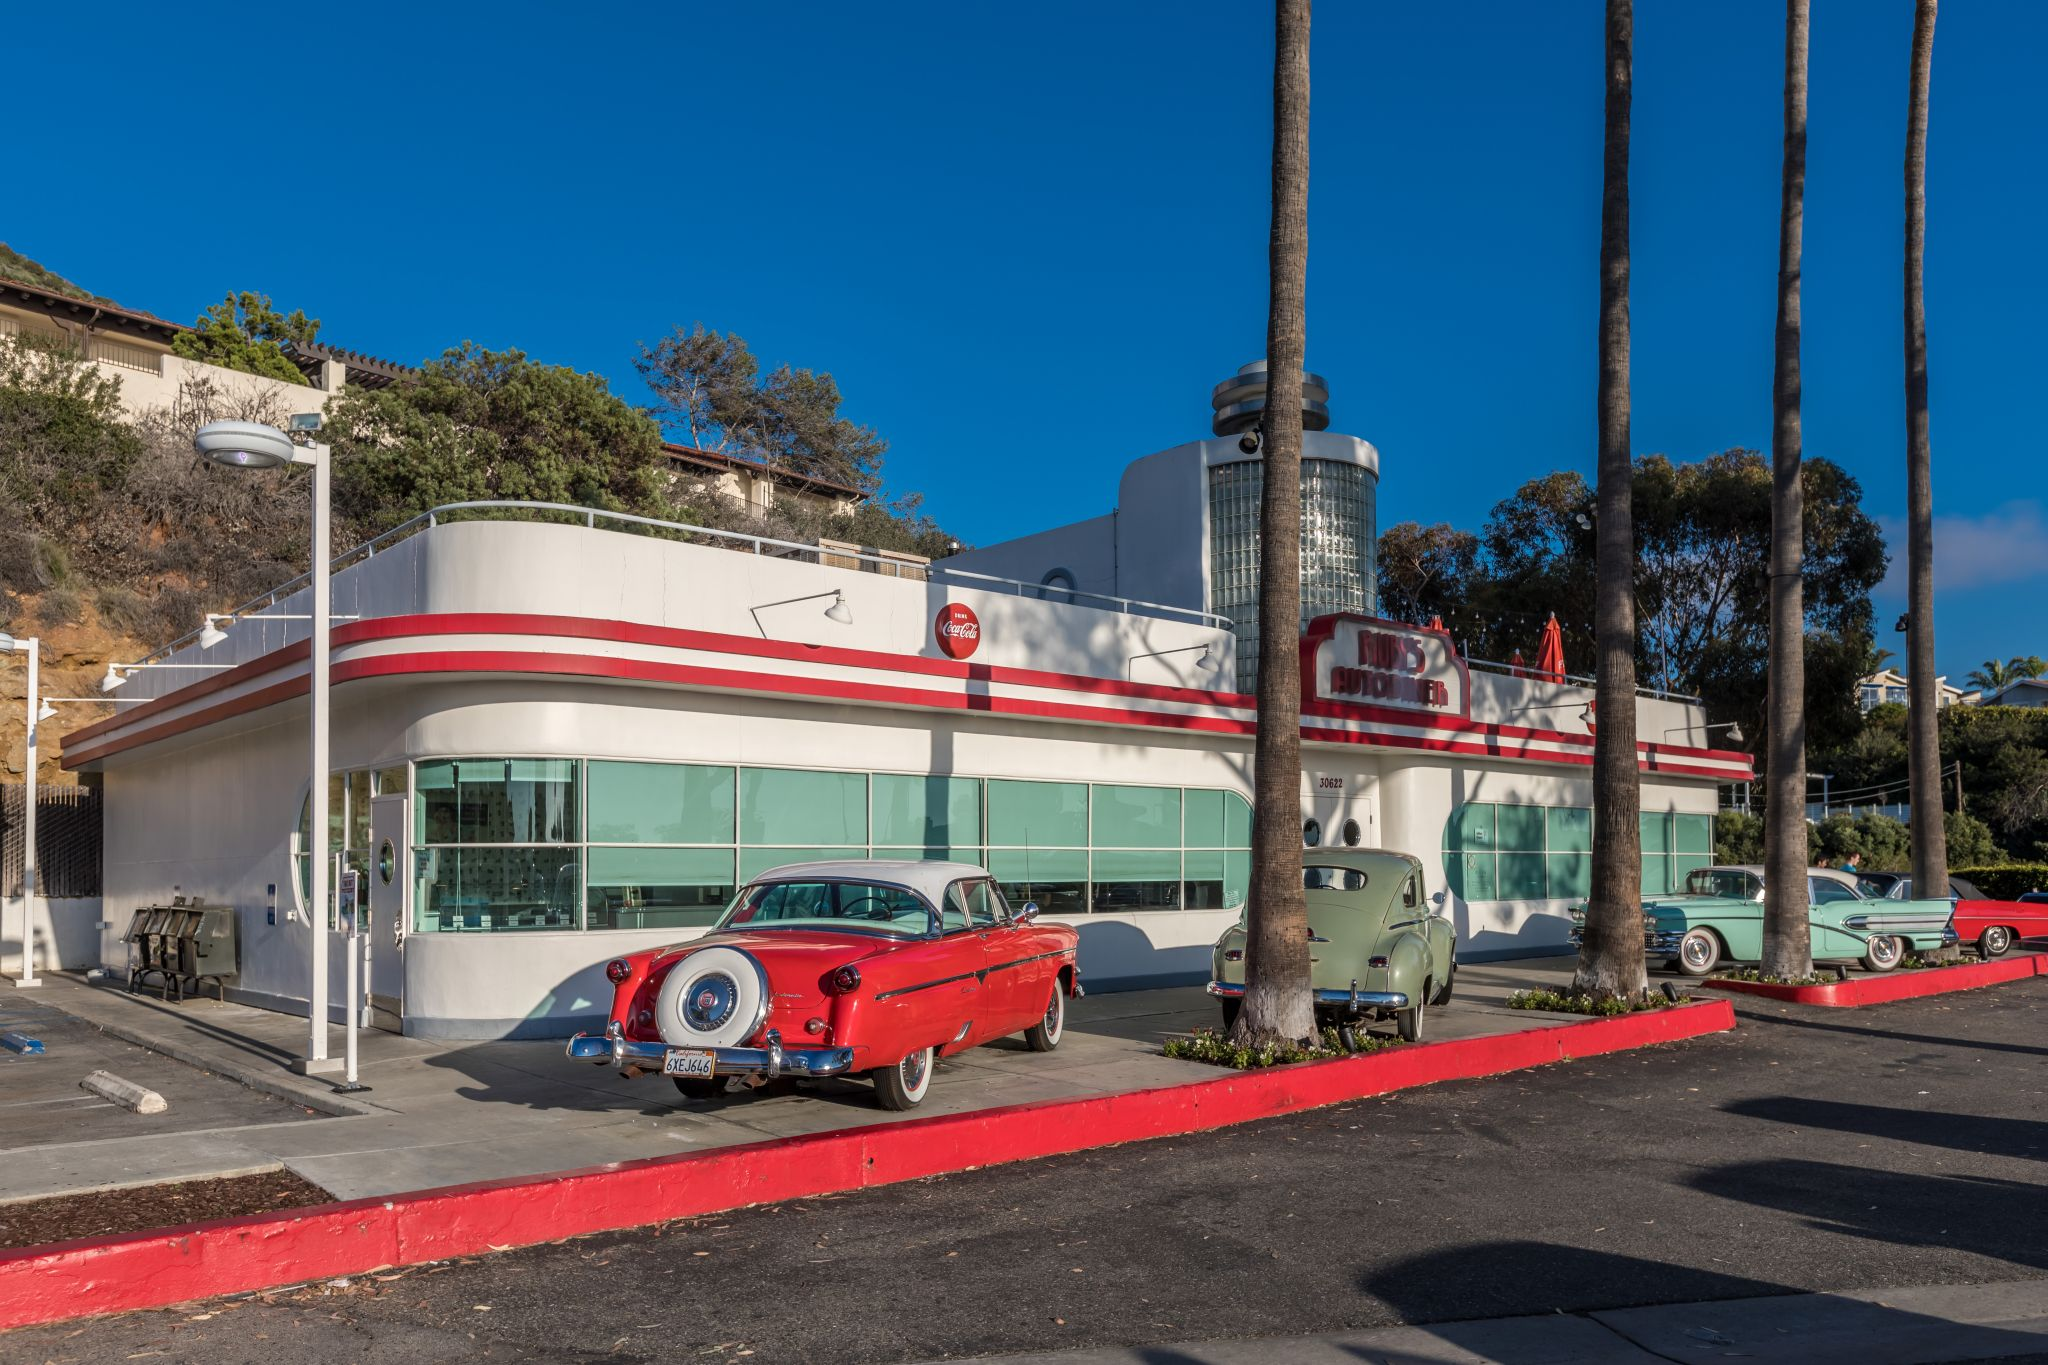 Ruby's Diner, USA